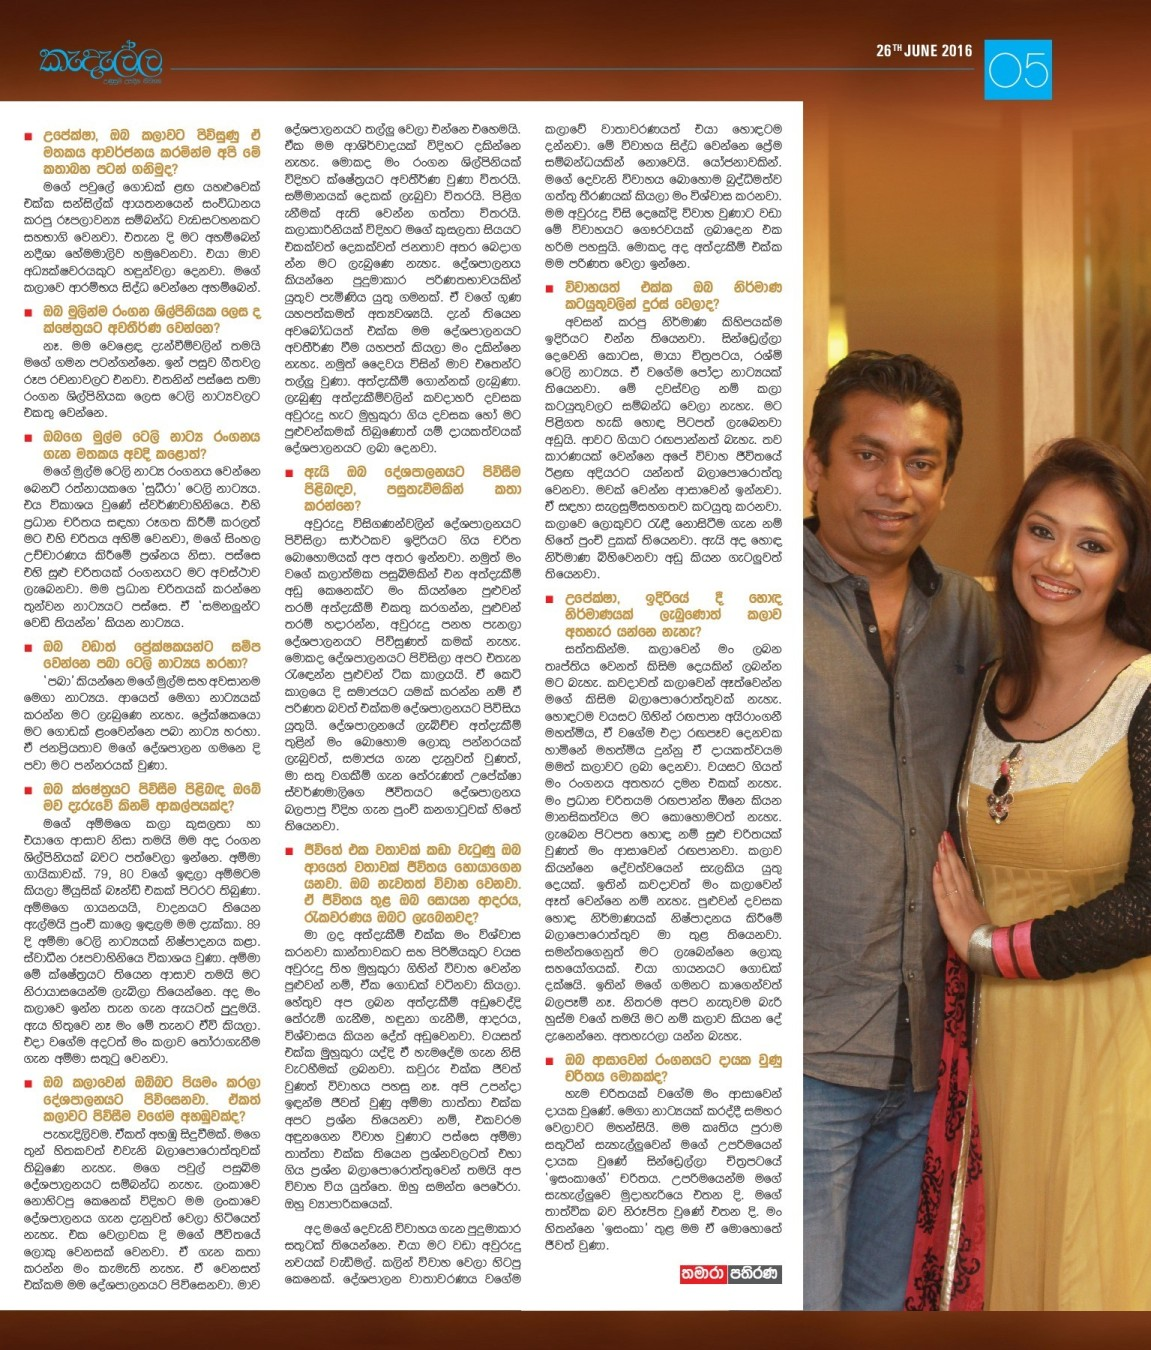 Gossip Chat with Upeksha Swarnamali | Gossip Lanka News | Hot